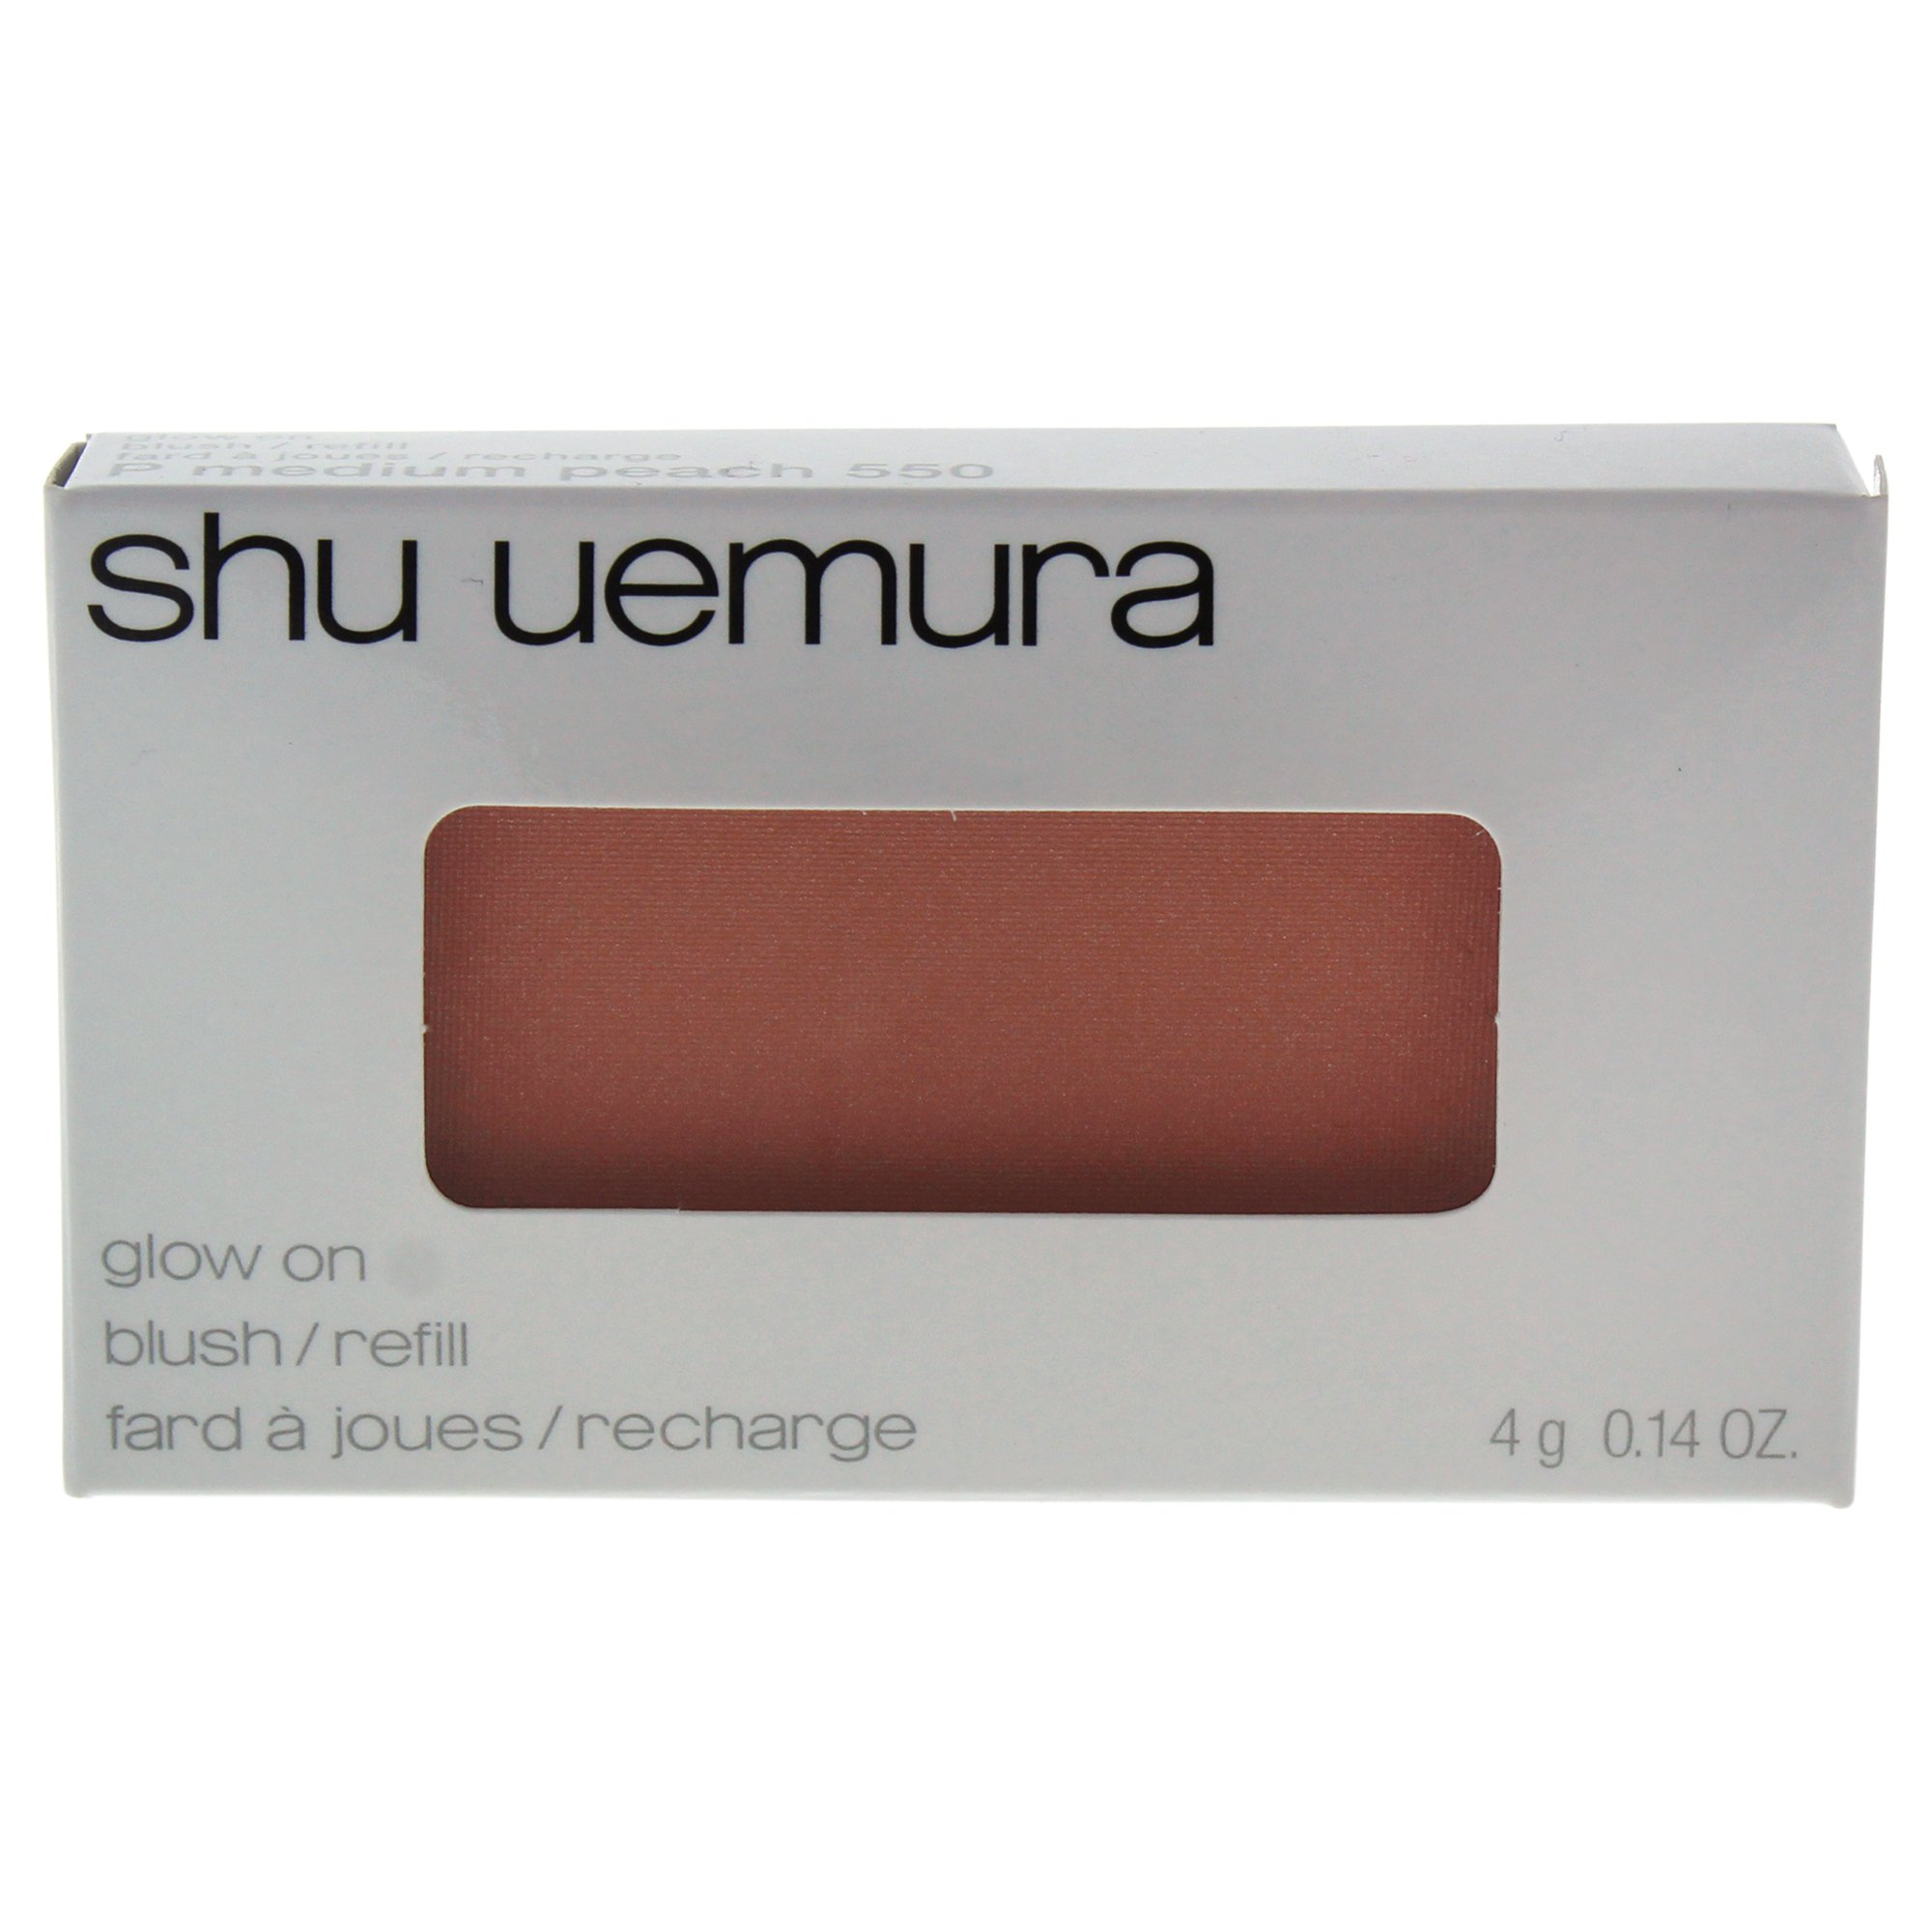 Shu Uemura Glow On Blush for Women, 550 P Medium Peach (refill), 0.14 Ounce